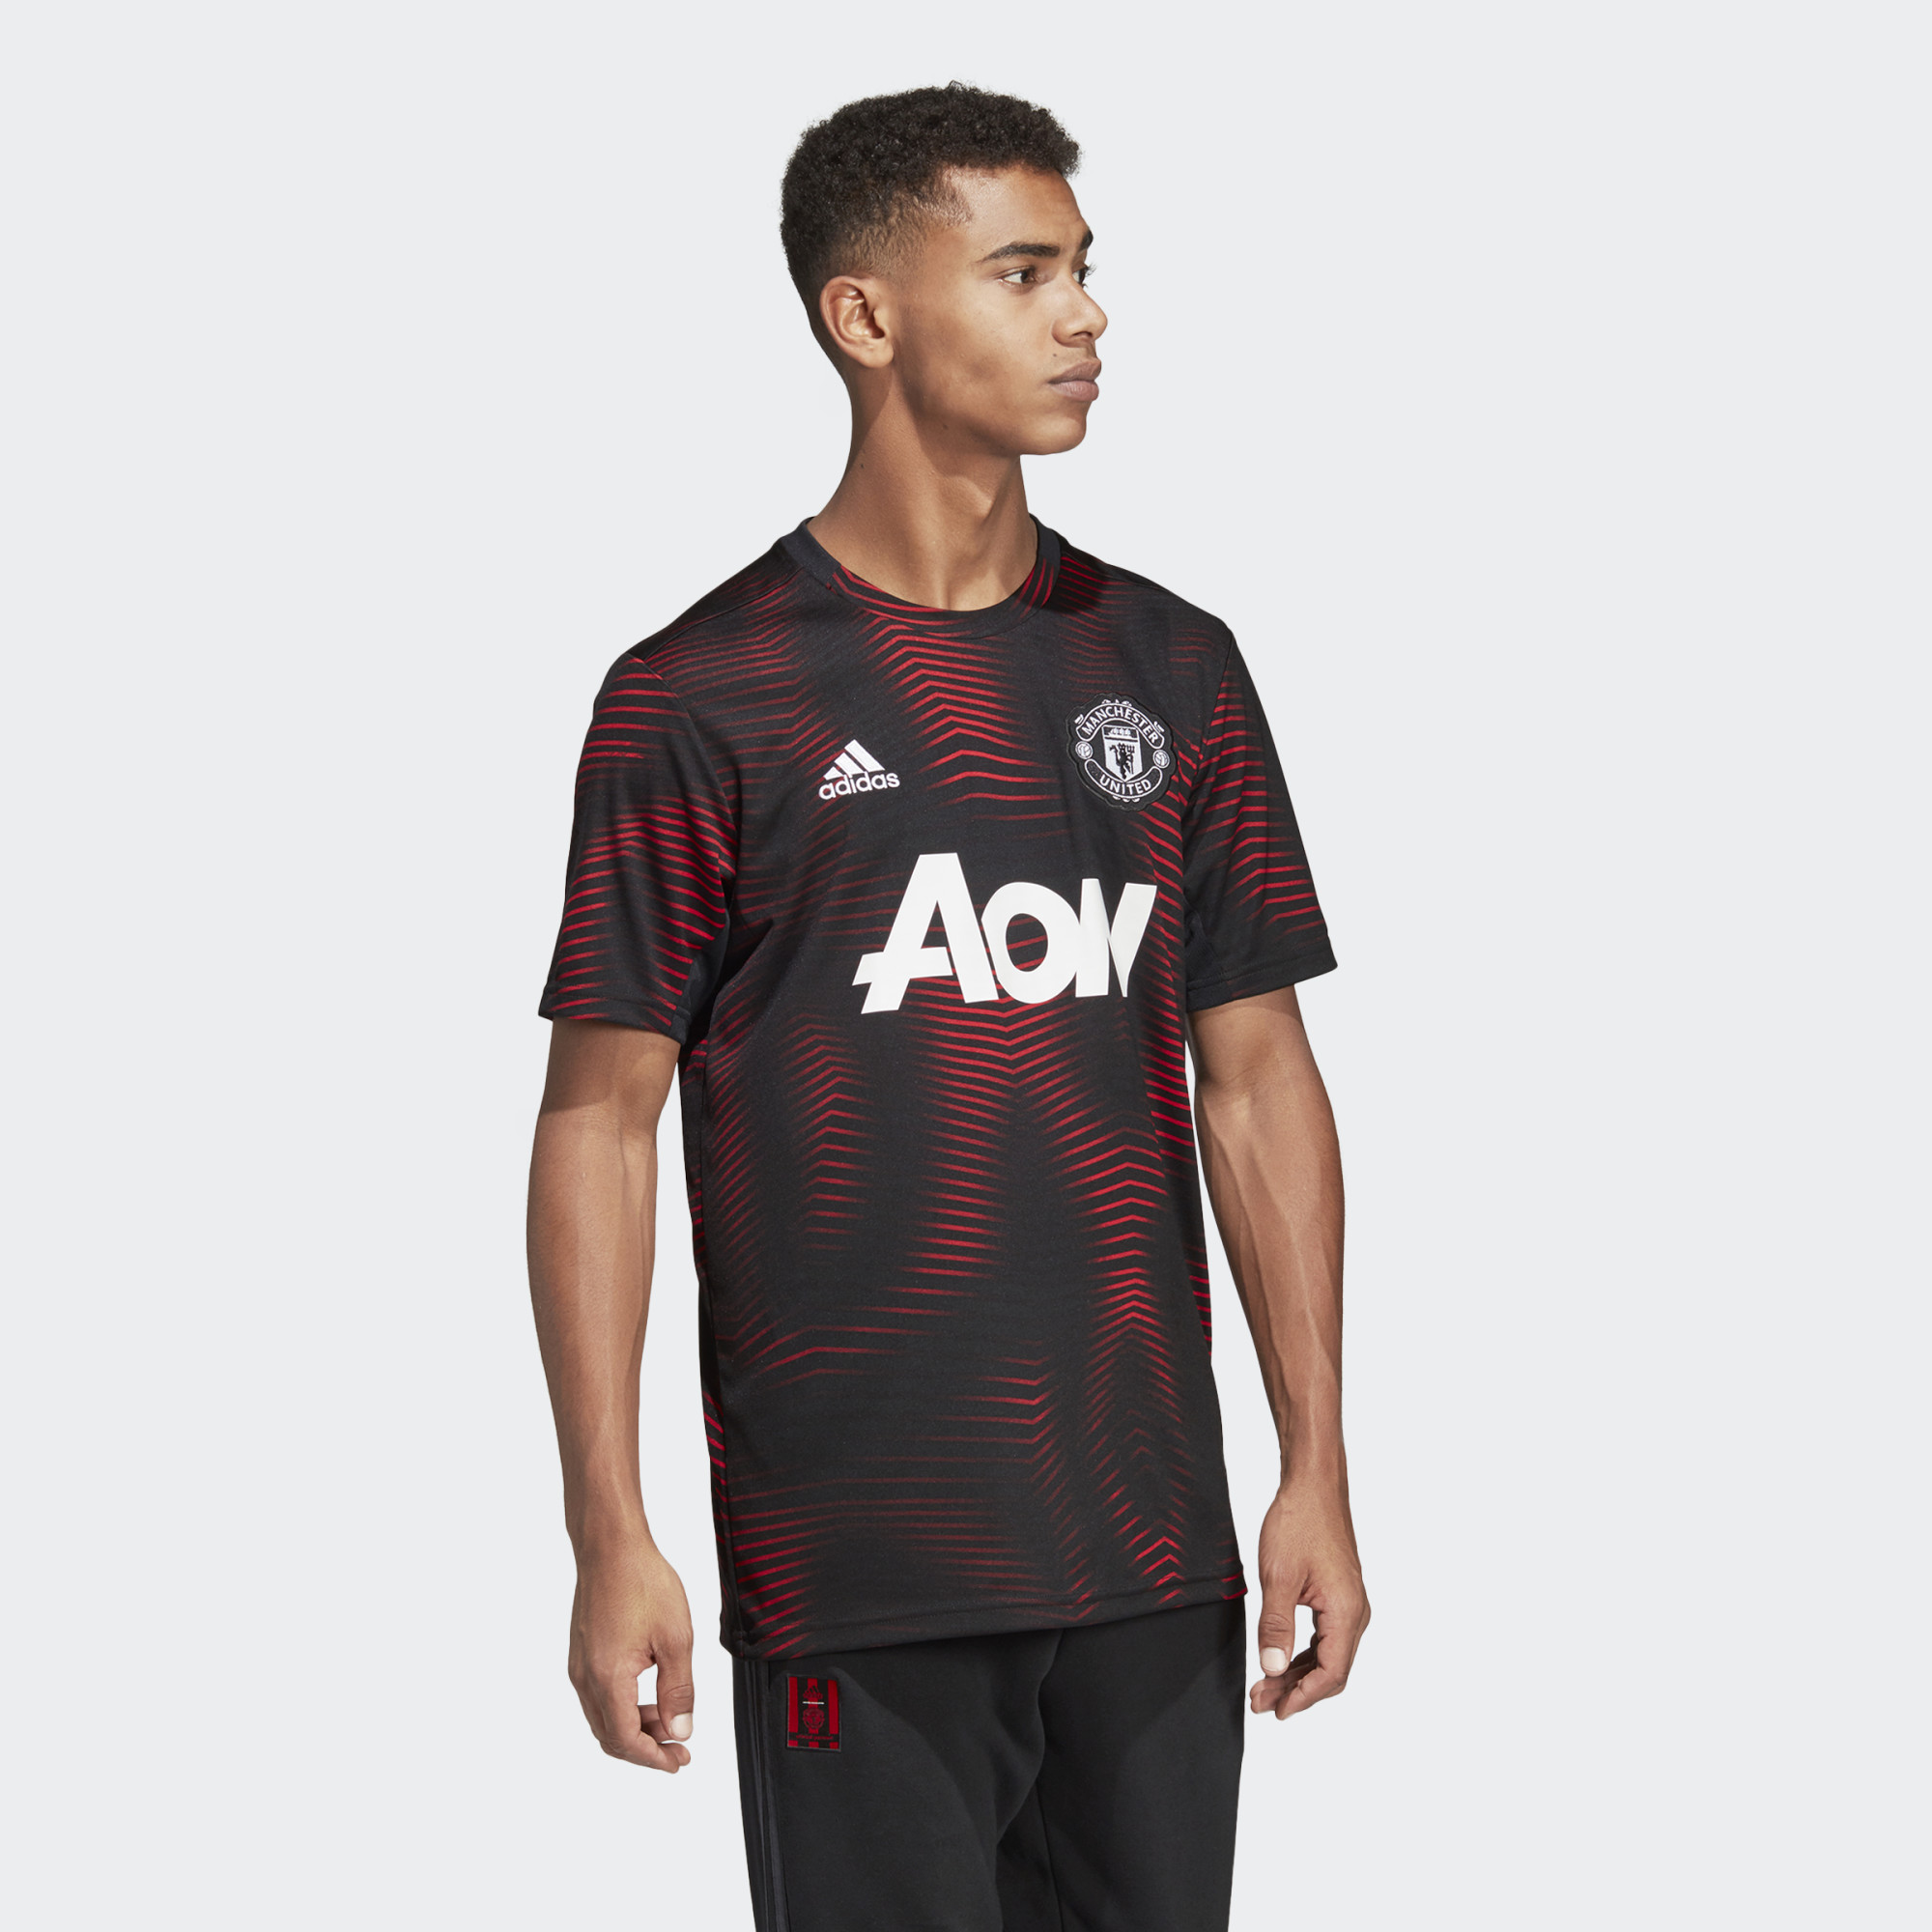 a9d1db5a9 ... Click to enlarge image  Manchester United Home Pre-Match Jersey Black DP2285 25 model.jpg